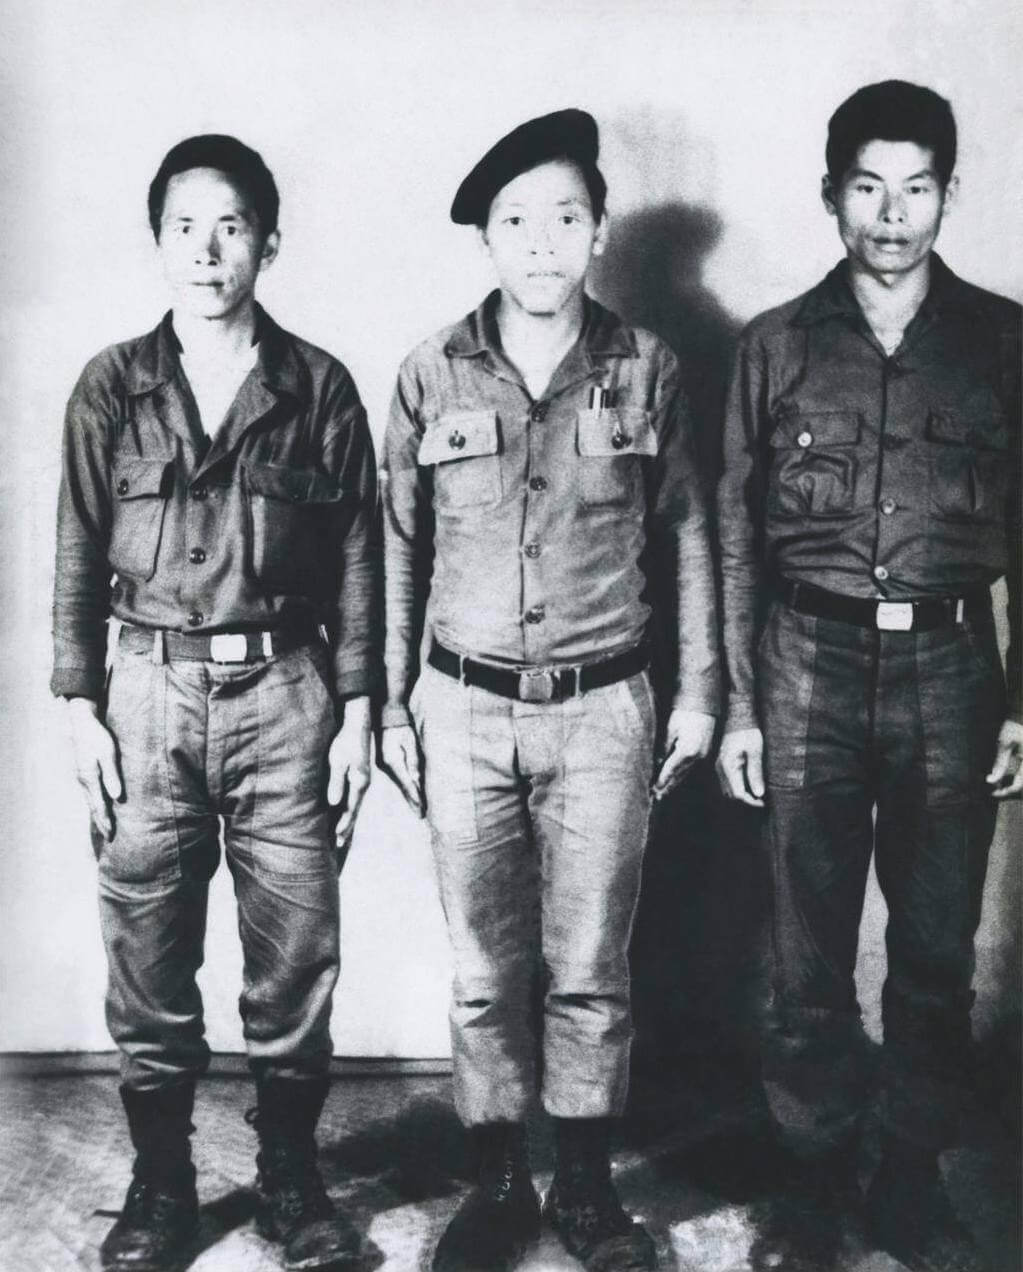 Black and white photo of three Hmong soldiers.